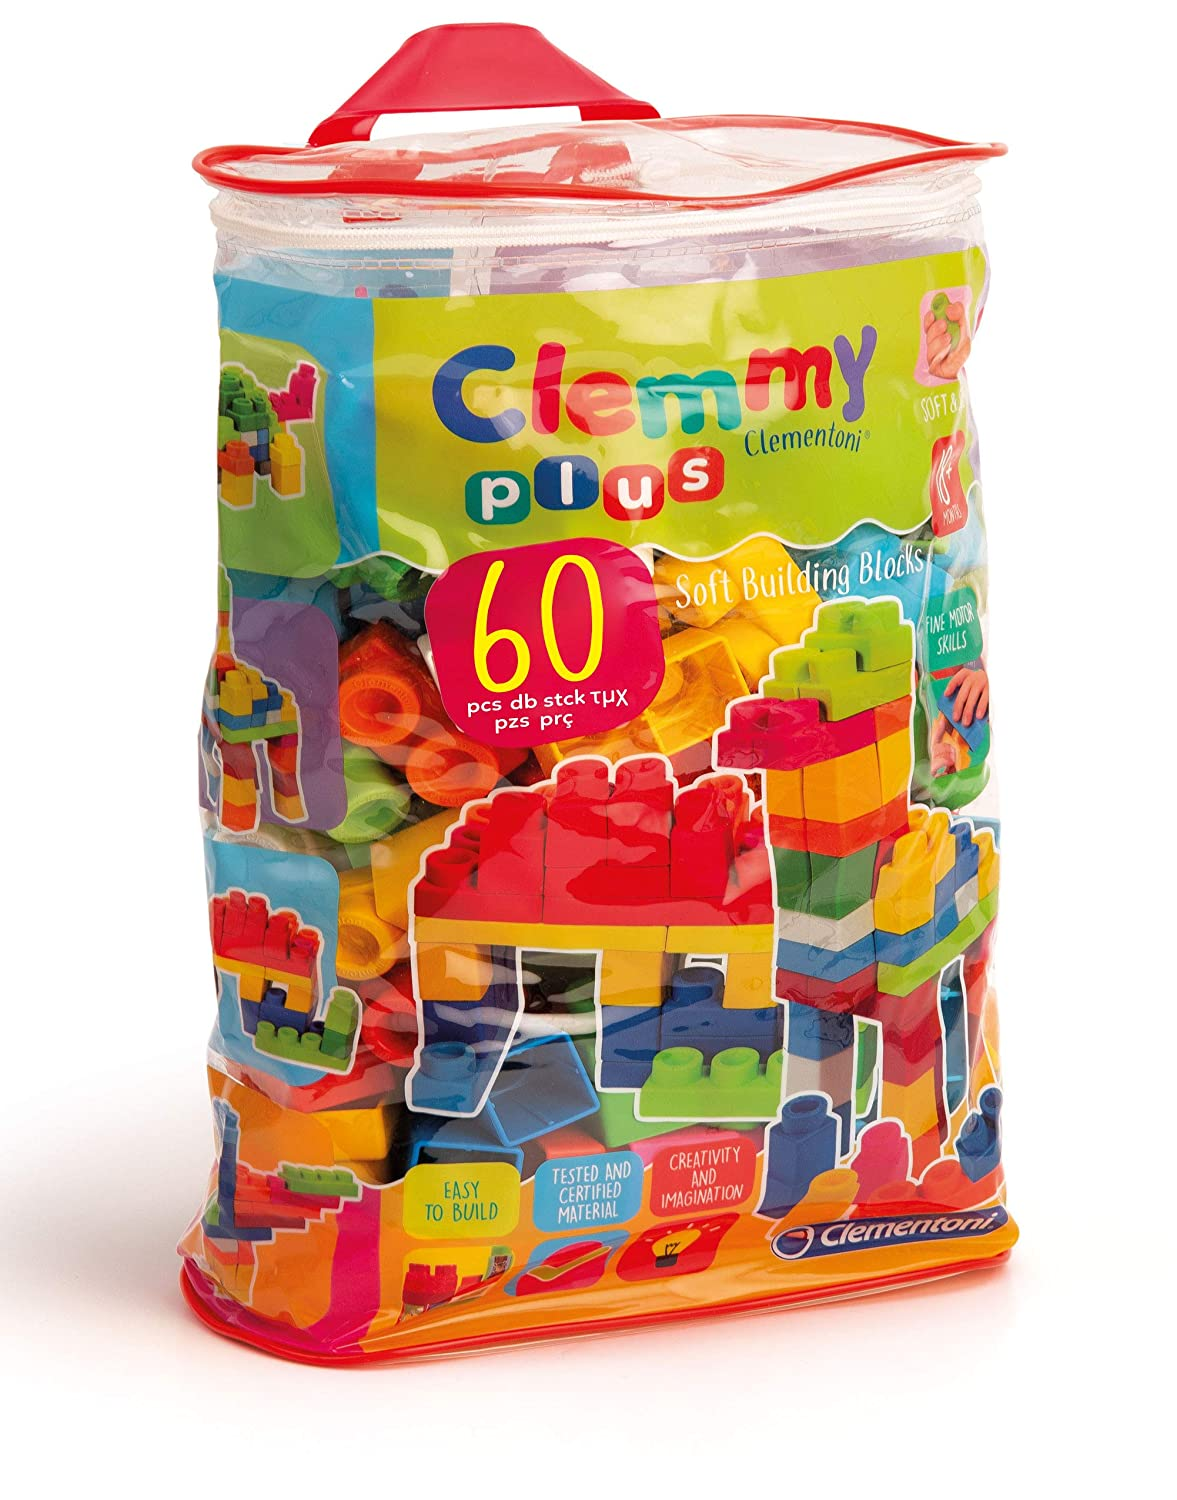 Clementoni Clemmy Plus 60 Blocks Bag Creative Toy Company 14880